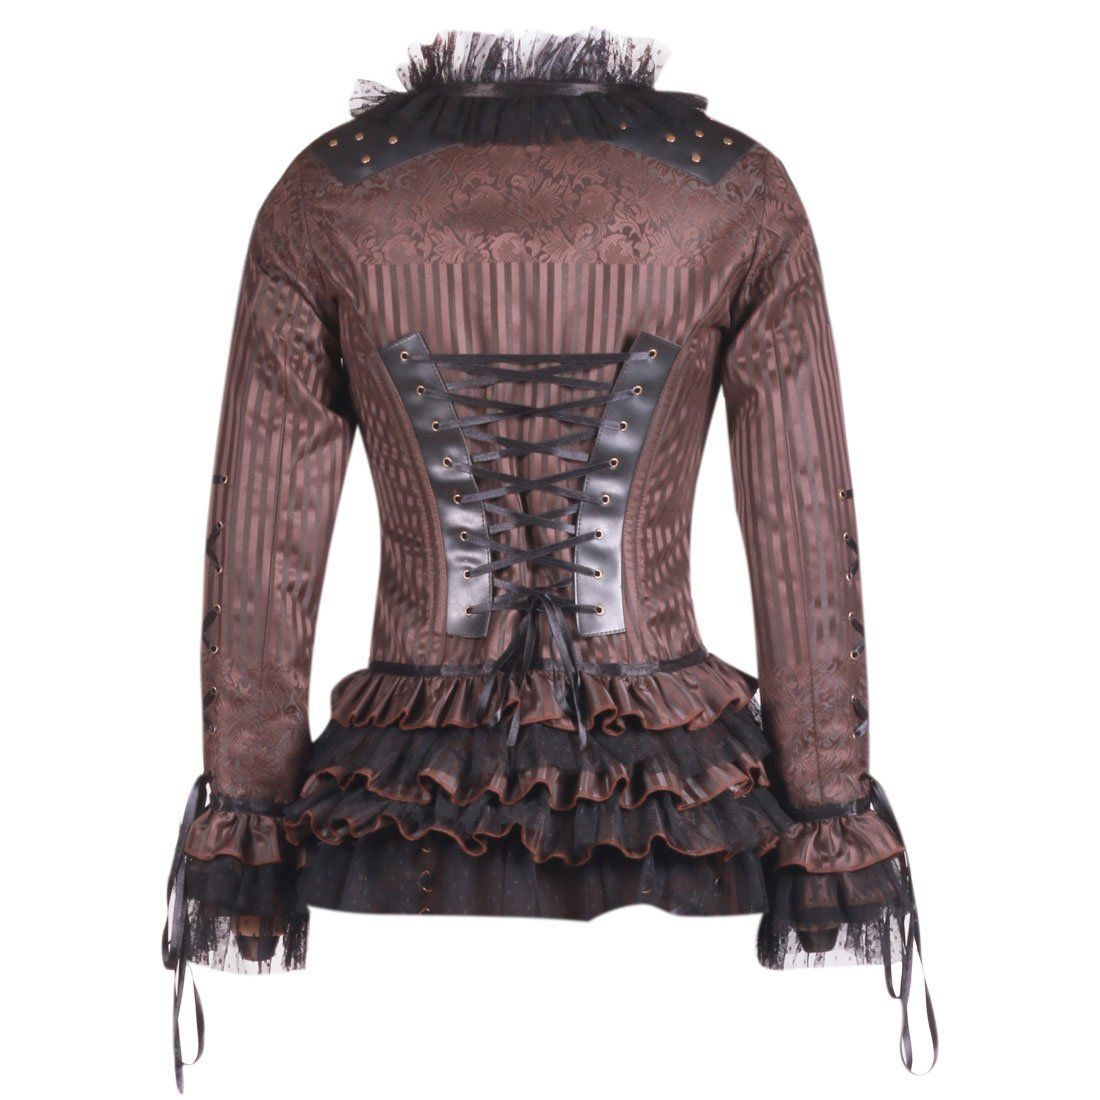 Photo of Steampunk Gothic Style Long Sleeve Corset Top